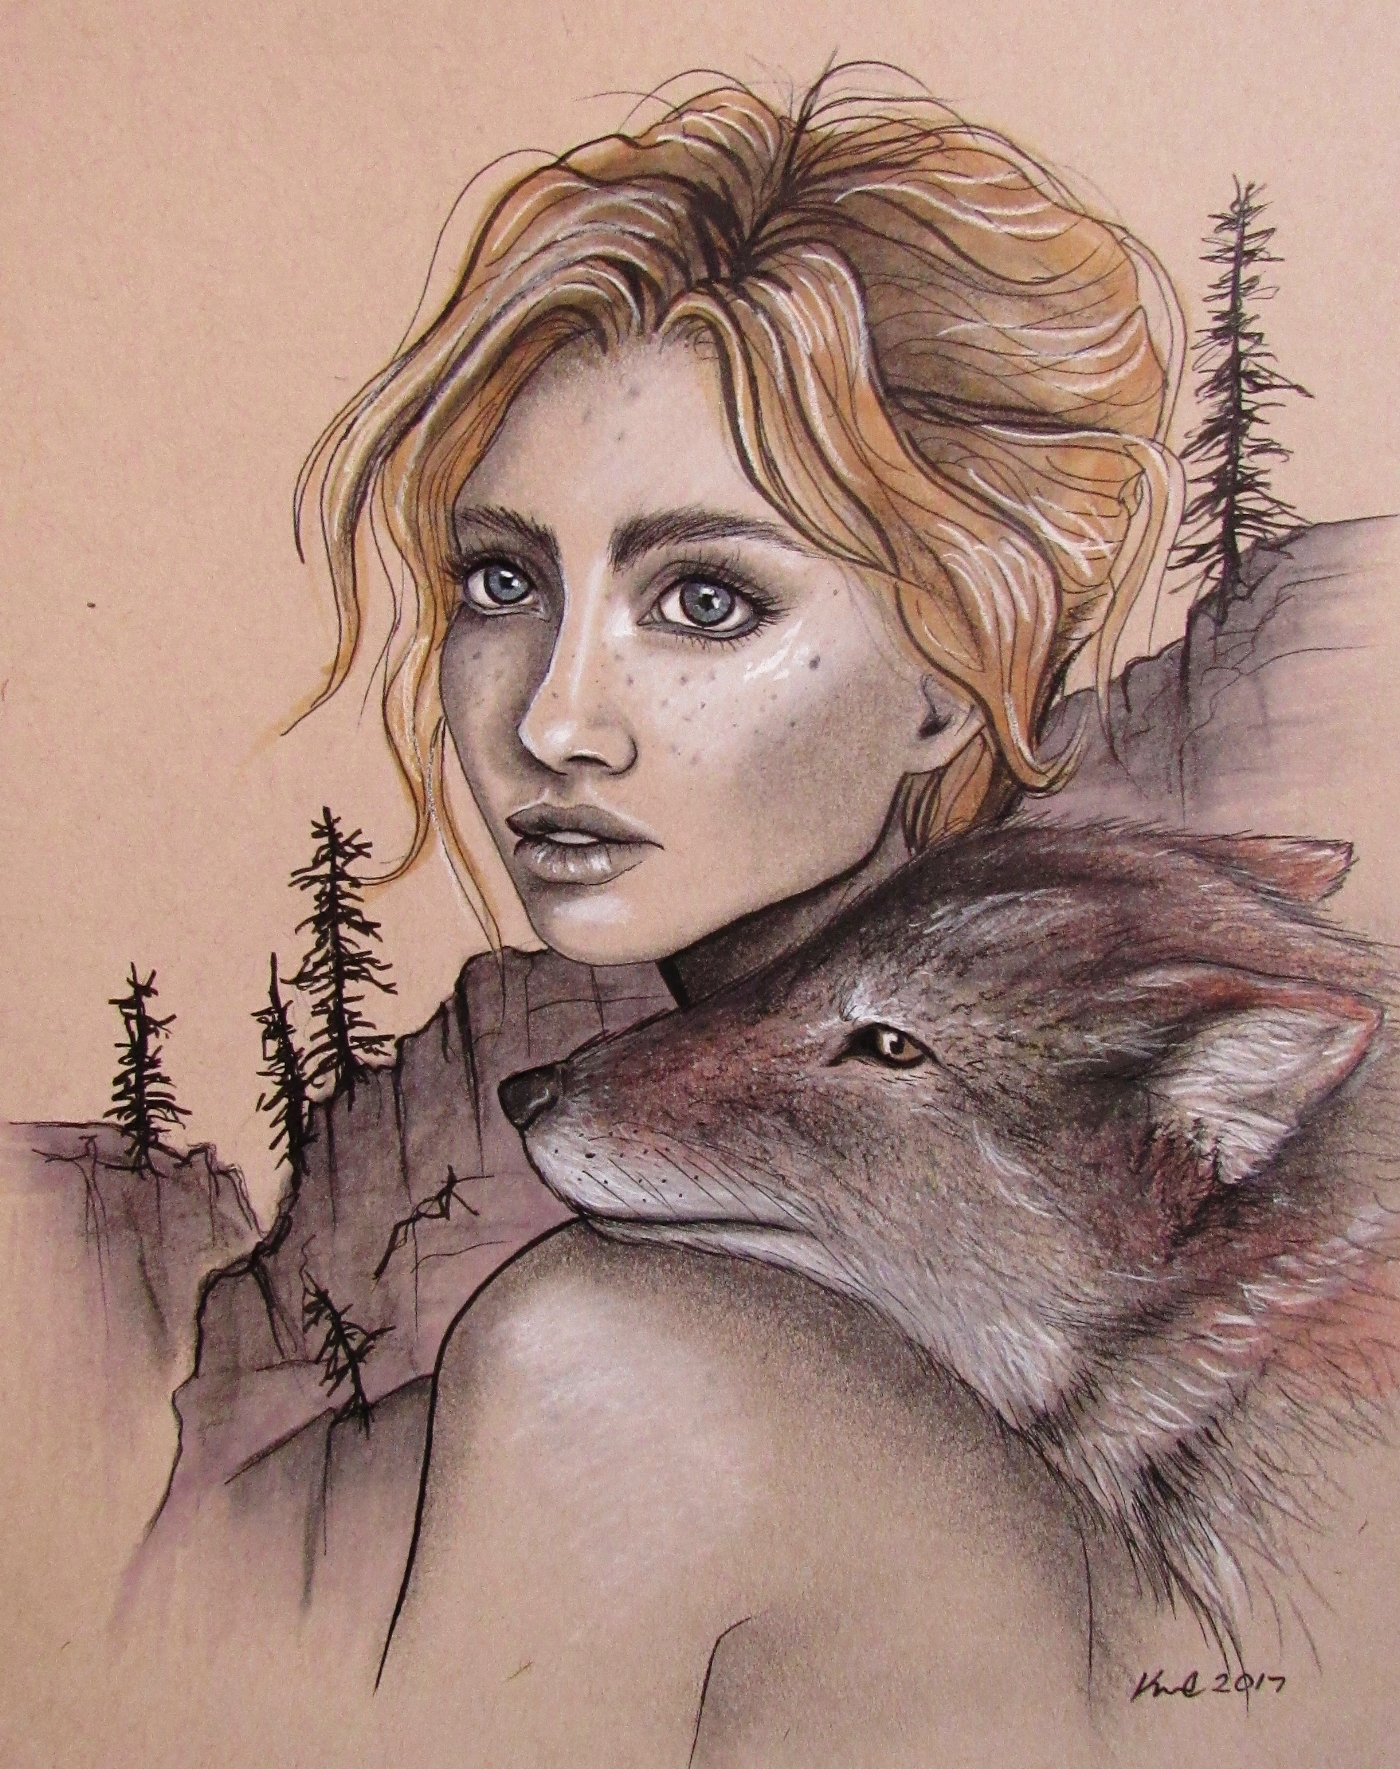 coyote woman illustration